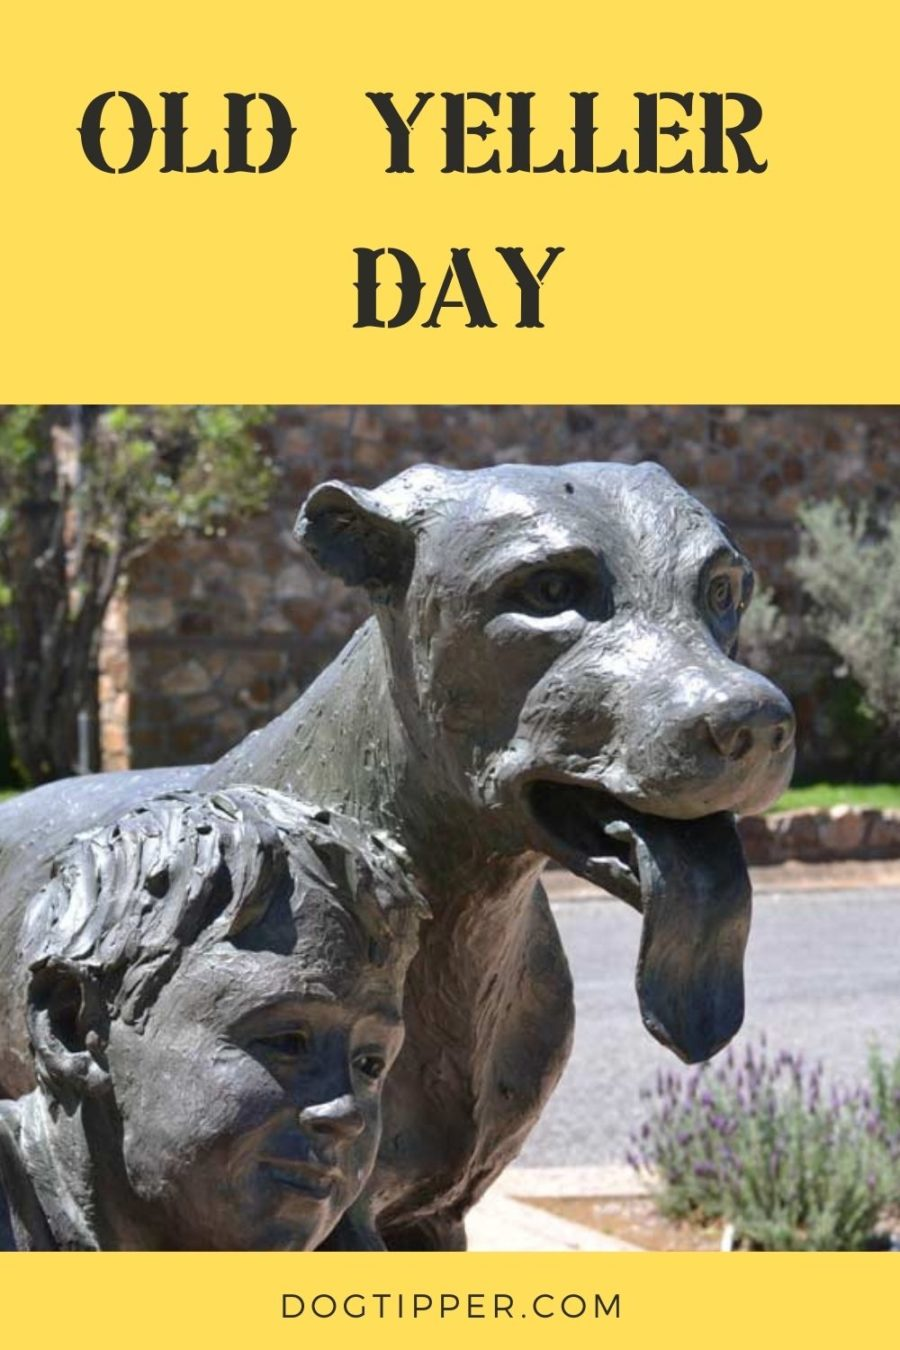 Old Yeller Day